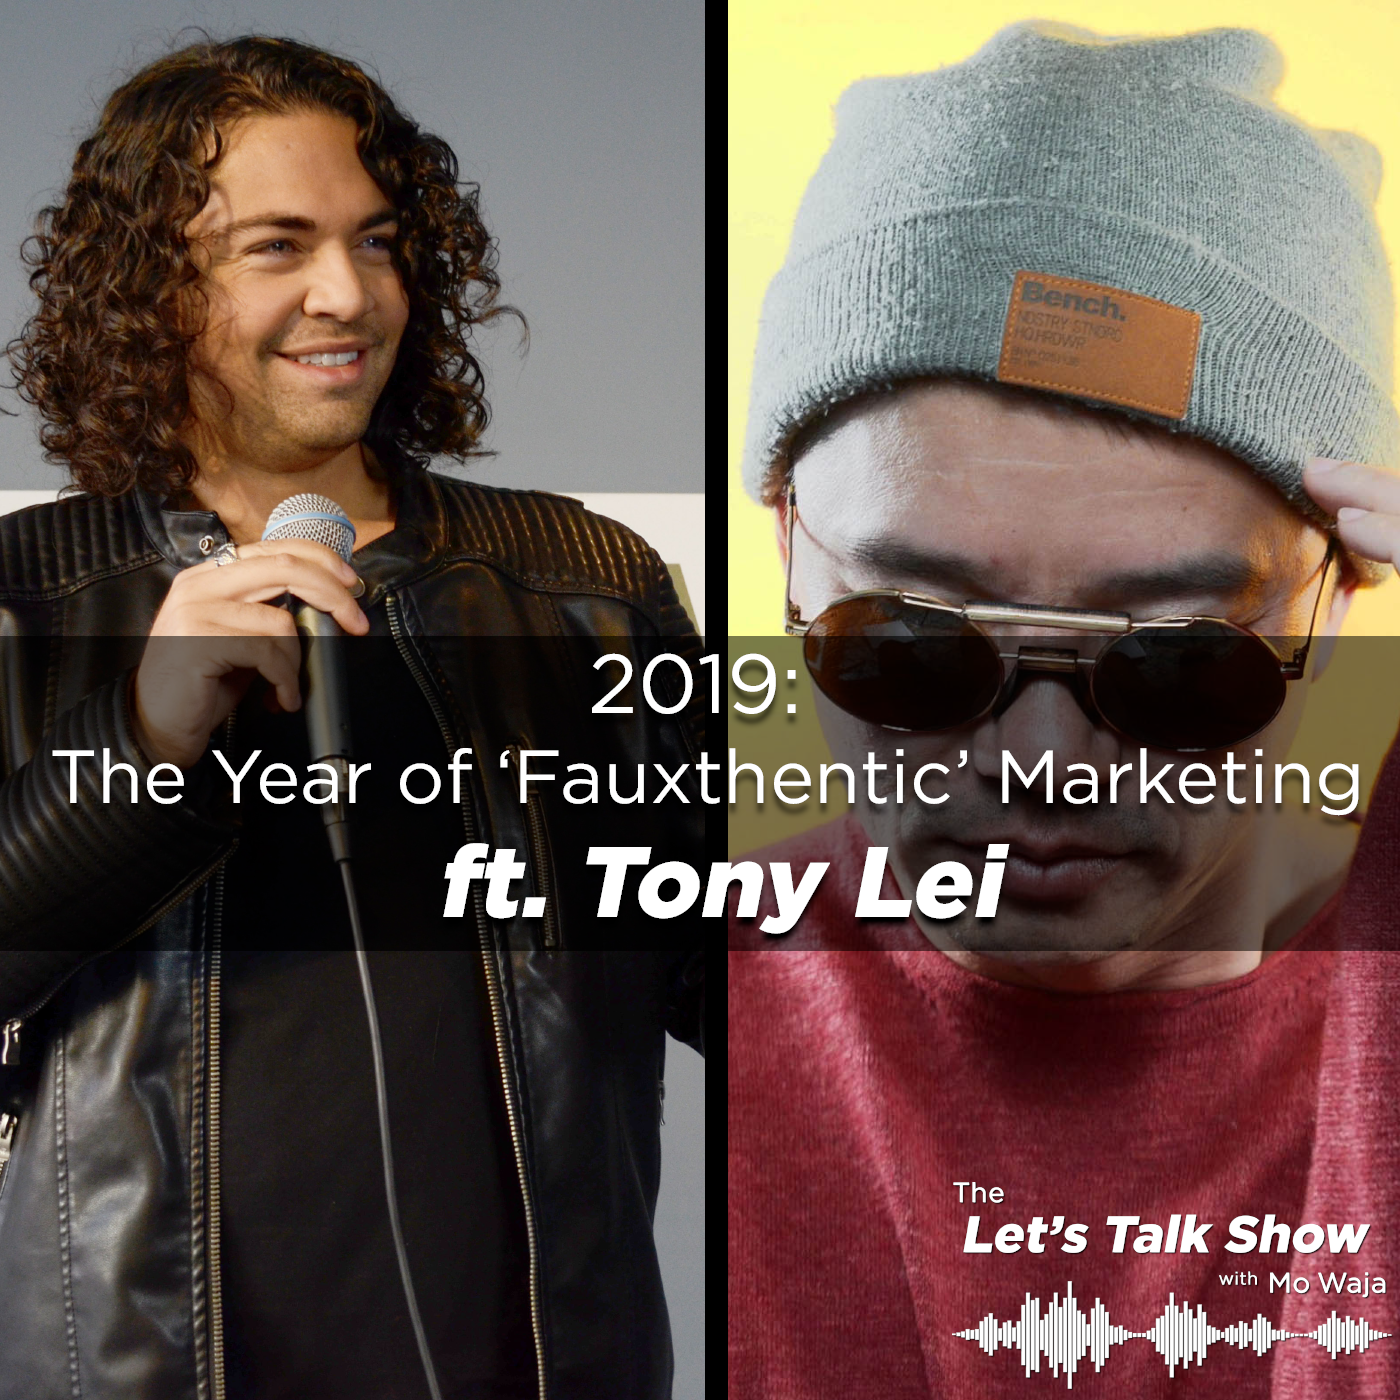 Artwork for 2019: The Year of 'Fauxthentic' Marketing ft. Tony Lei, Creative Entrepreneur and Media Specialist